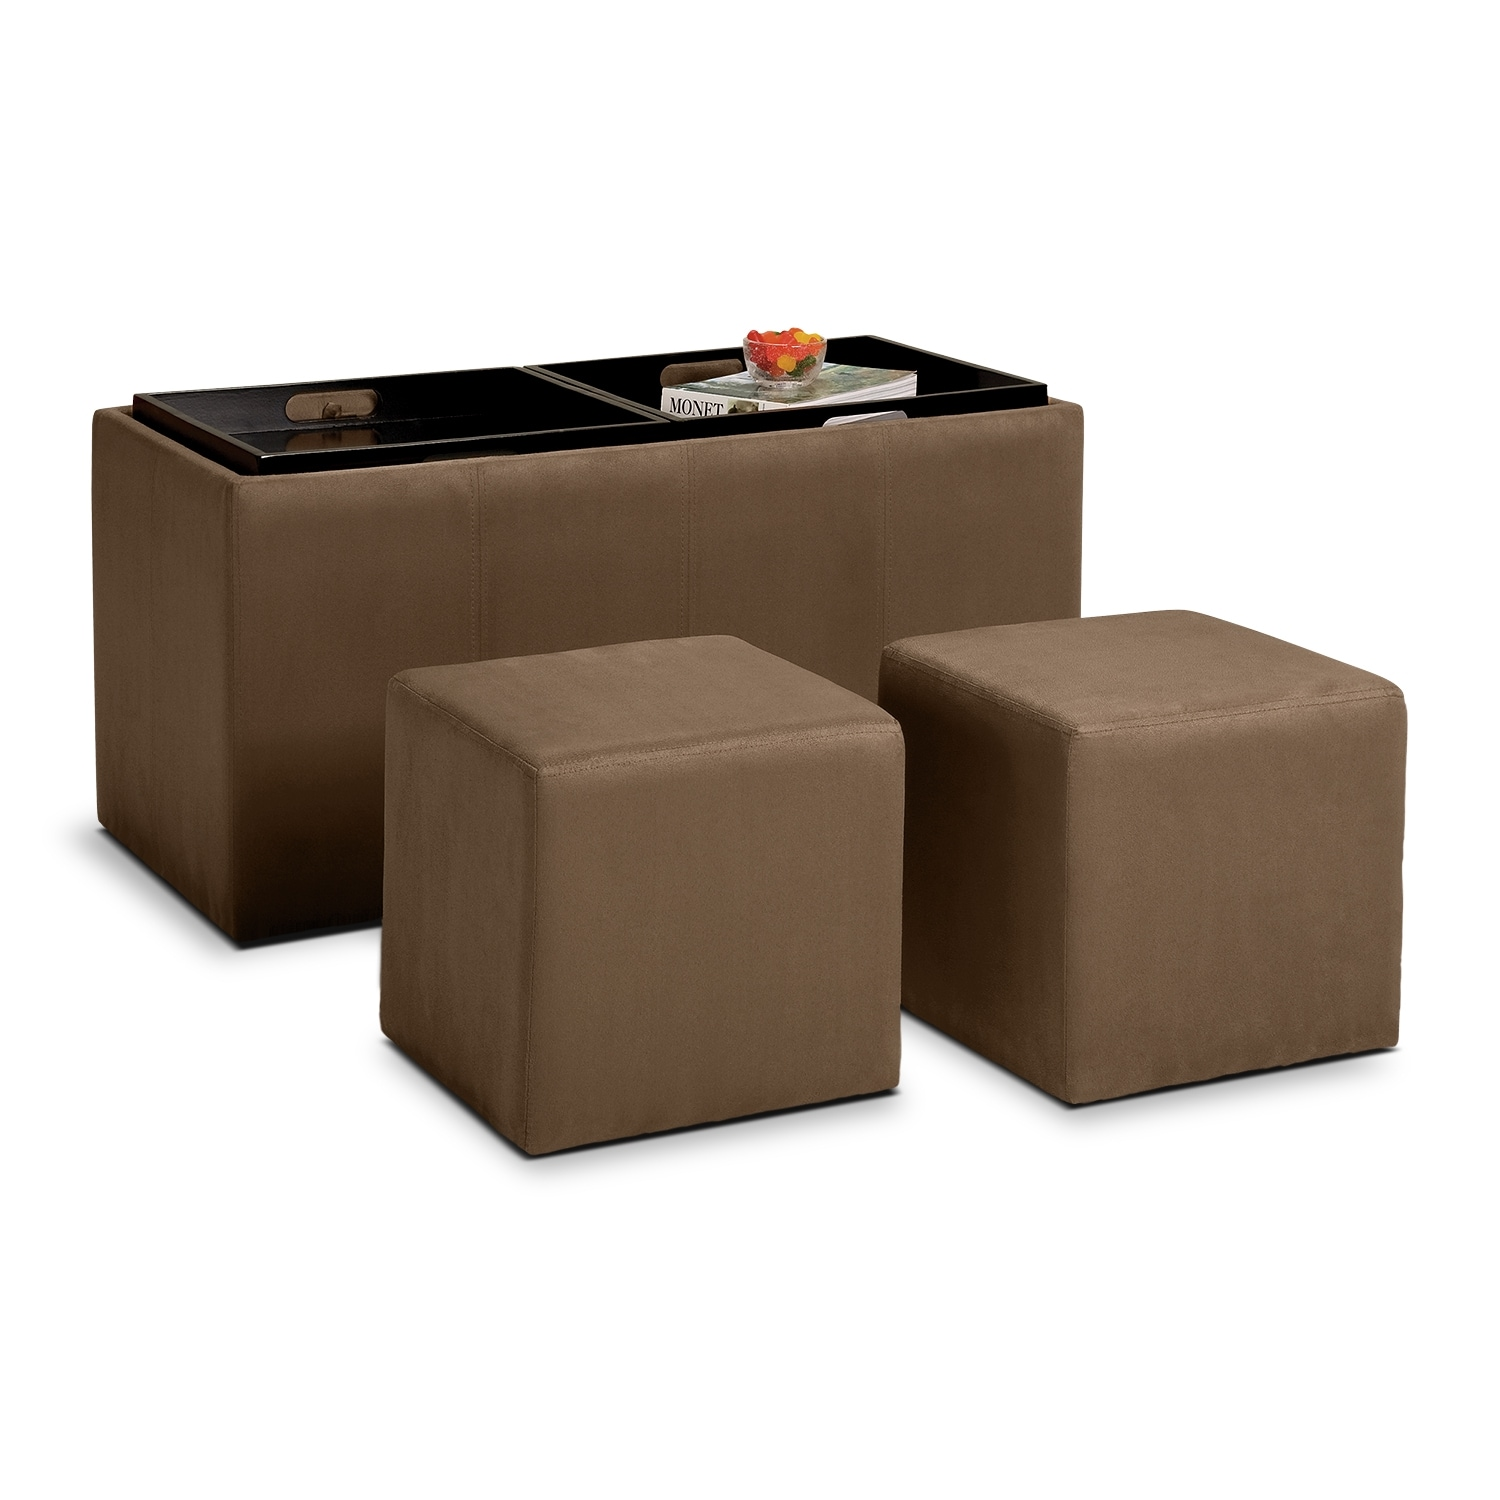 Accent and Occasional Furniture - Tiffany 3-Piece Storage Ottoman with Trays - Tan